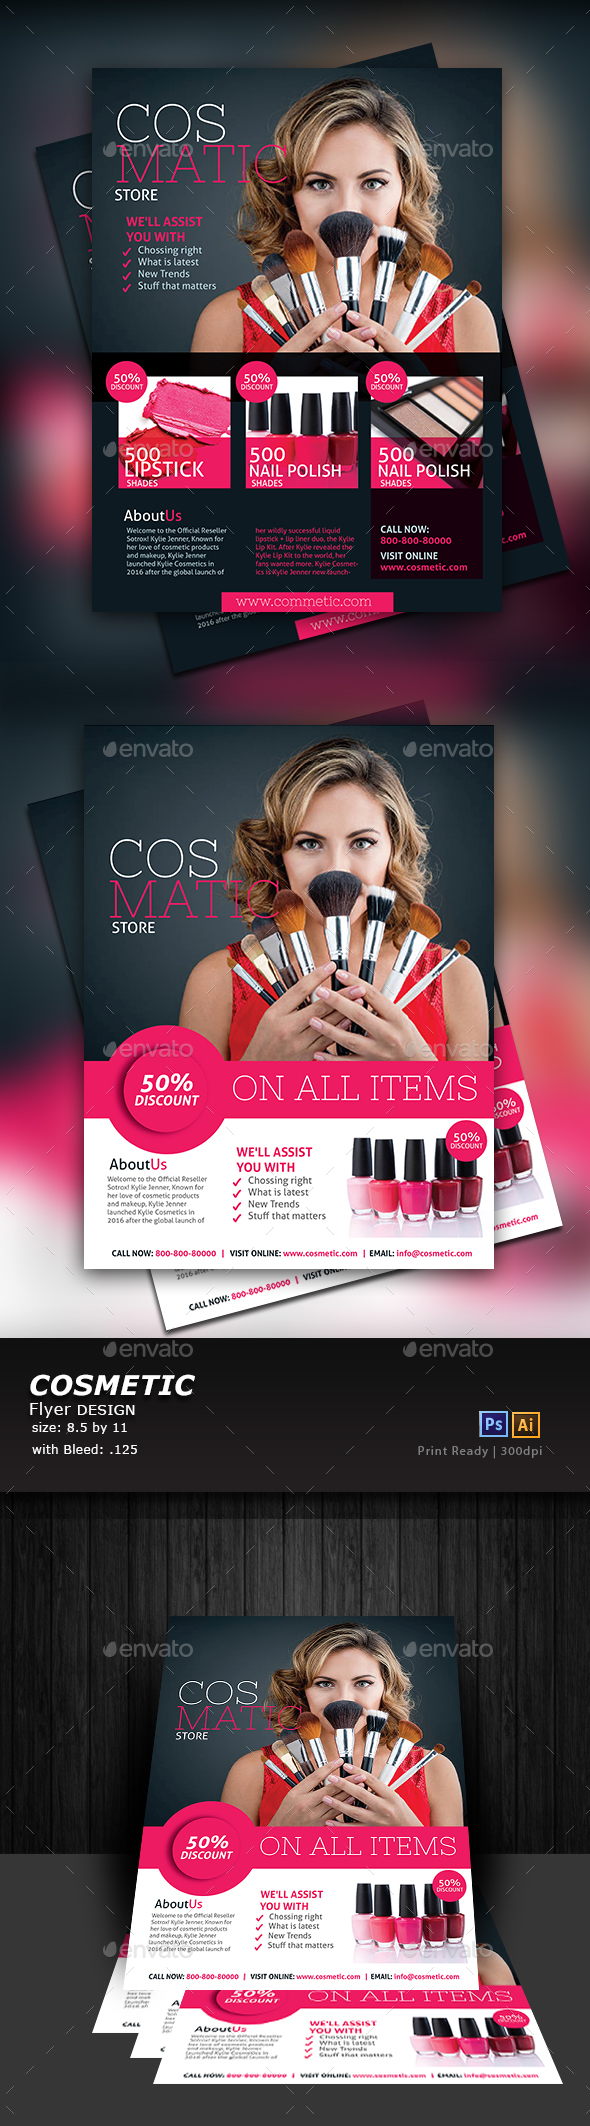 Cosmetic Store Flyer - Flyers Print Templates